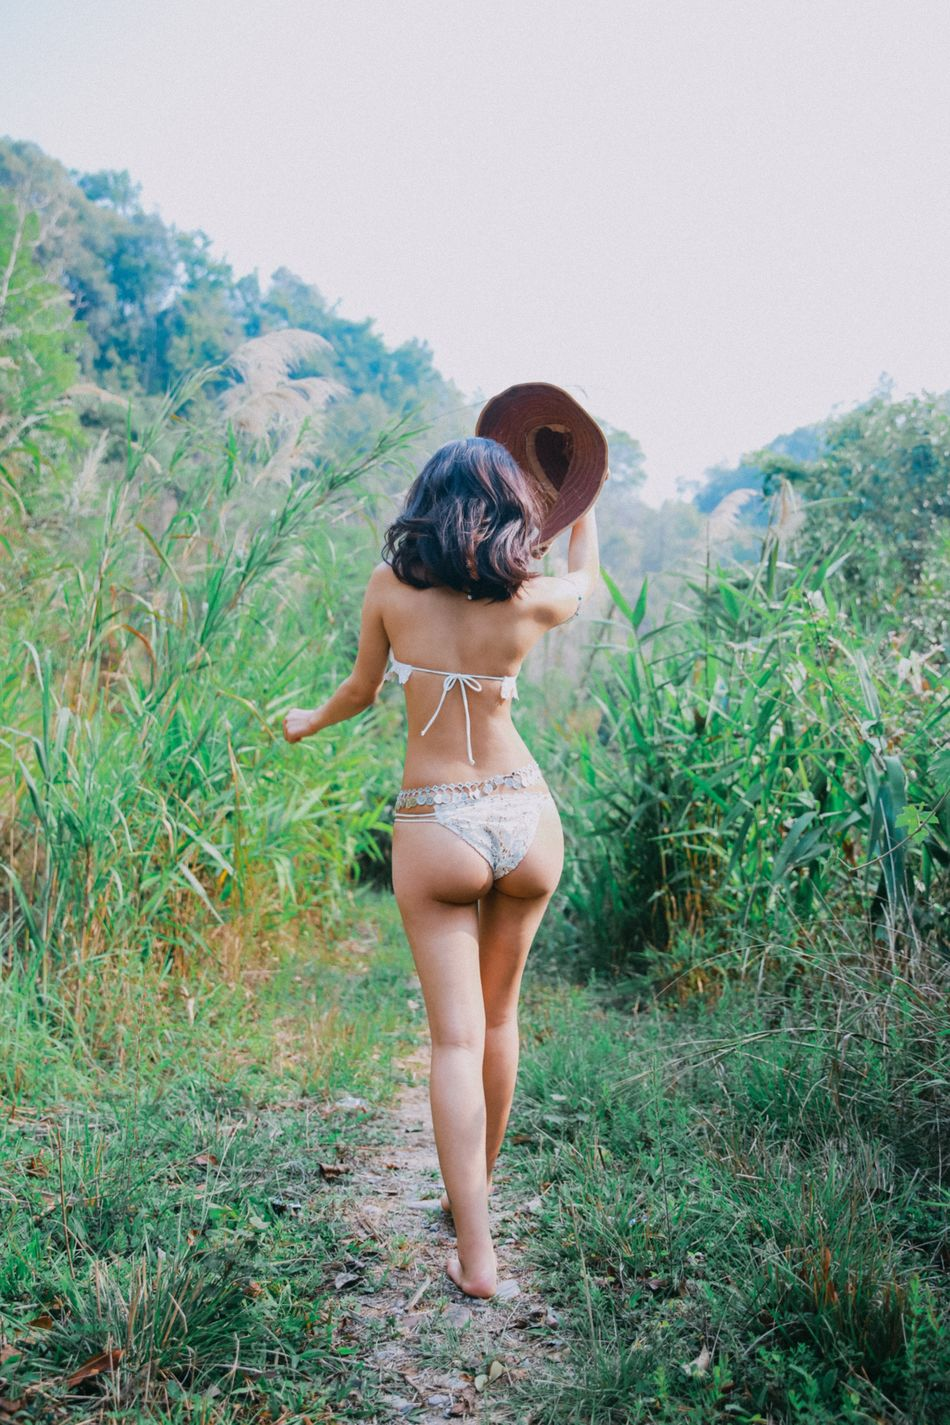 Like a cowgirl Cowgirl Sexygirl Body Curves  Fitness Healthy Summertime Naturelover